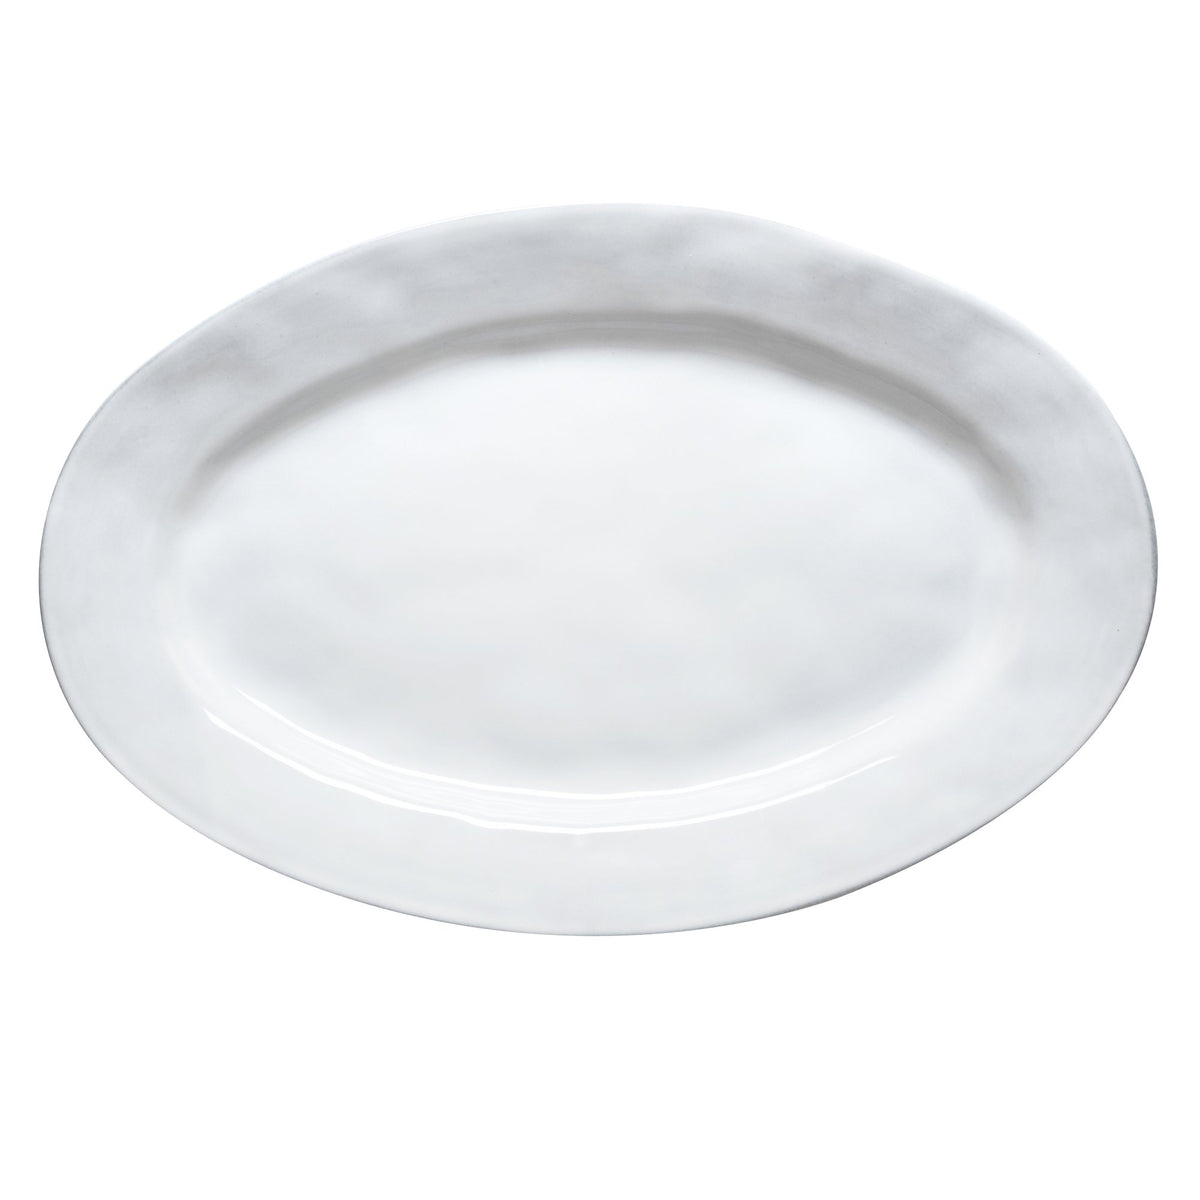 Quotidien Medium Oval Platter